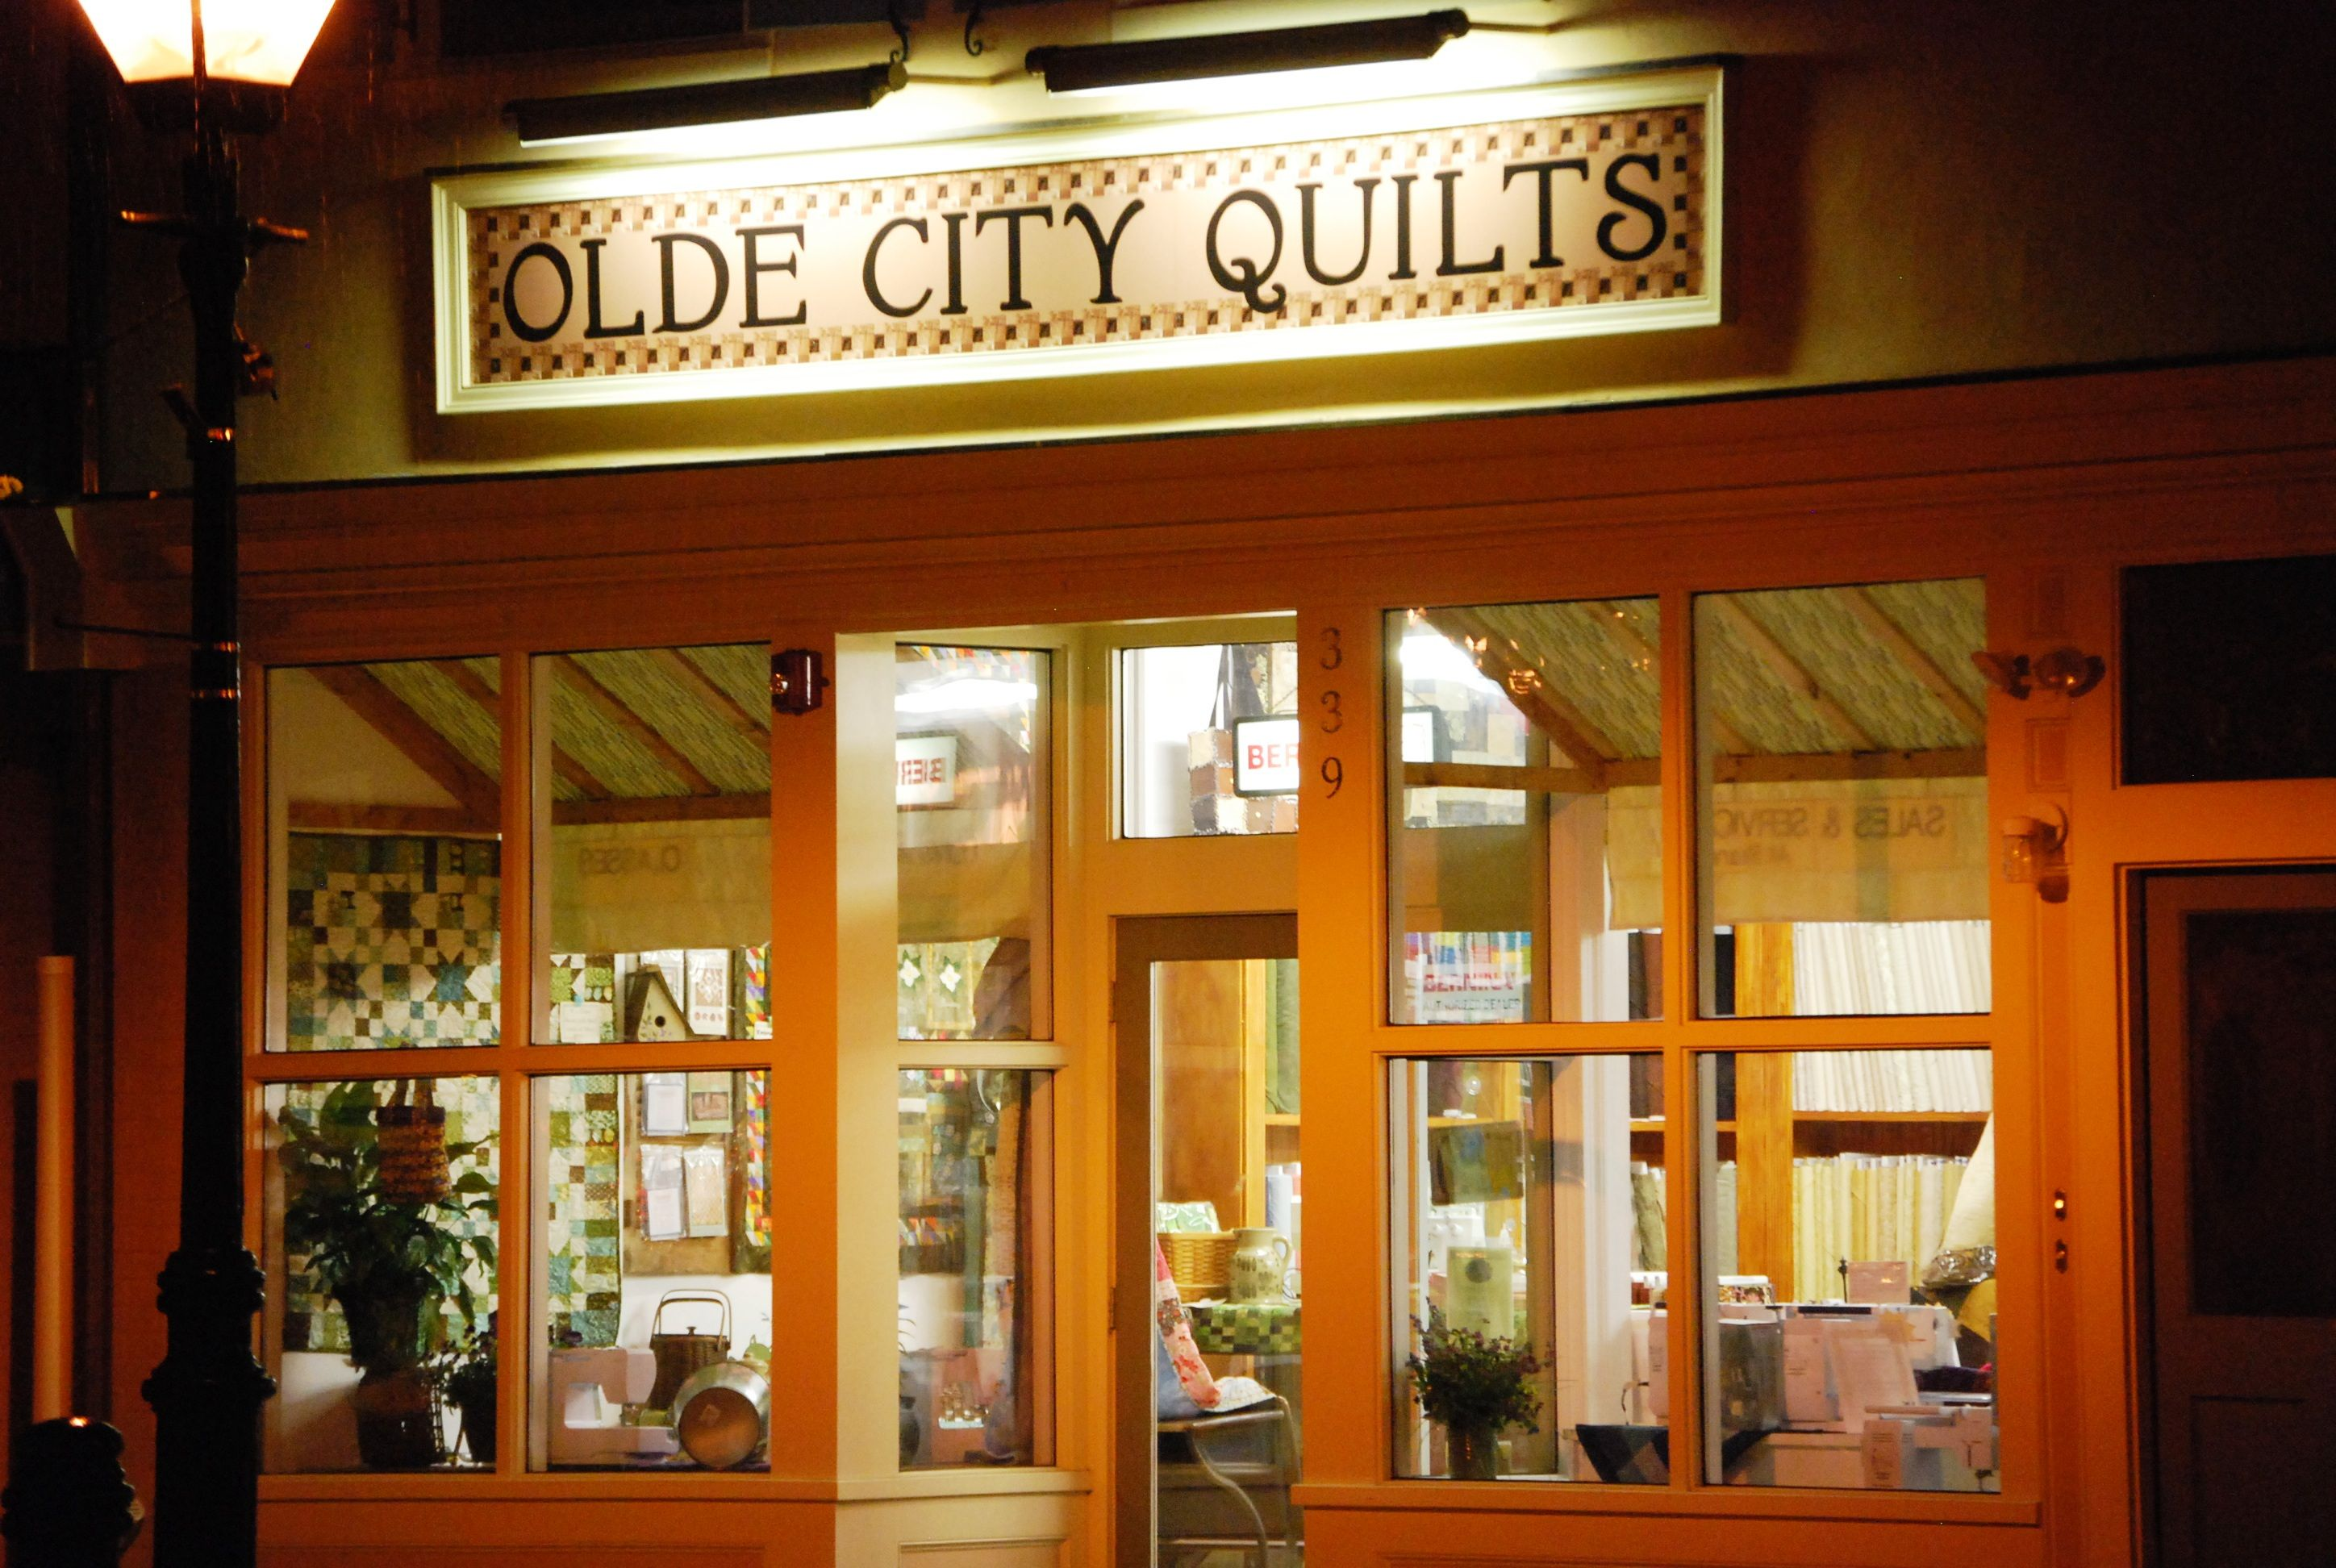 One of the Best Quilt shops! Well worth the trip if you will be ... : best quilt shops - Adamdwight.com